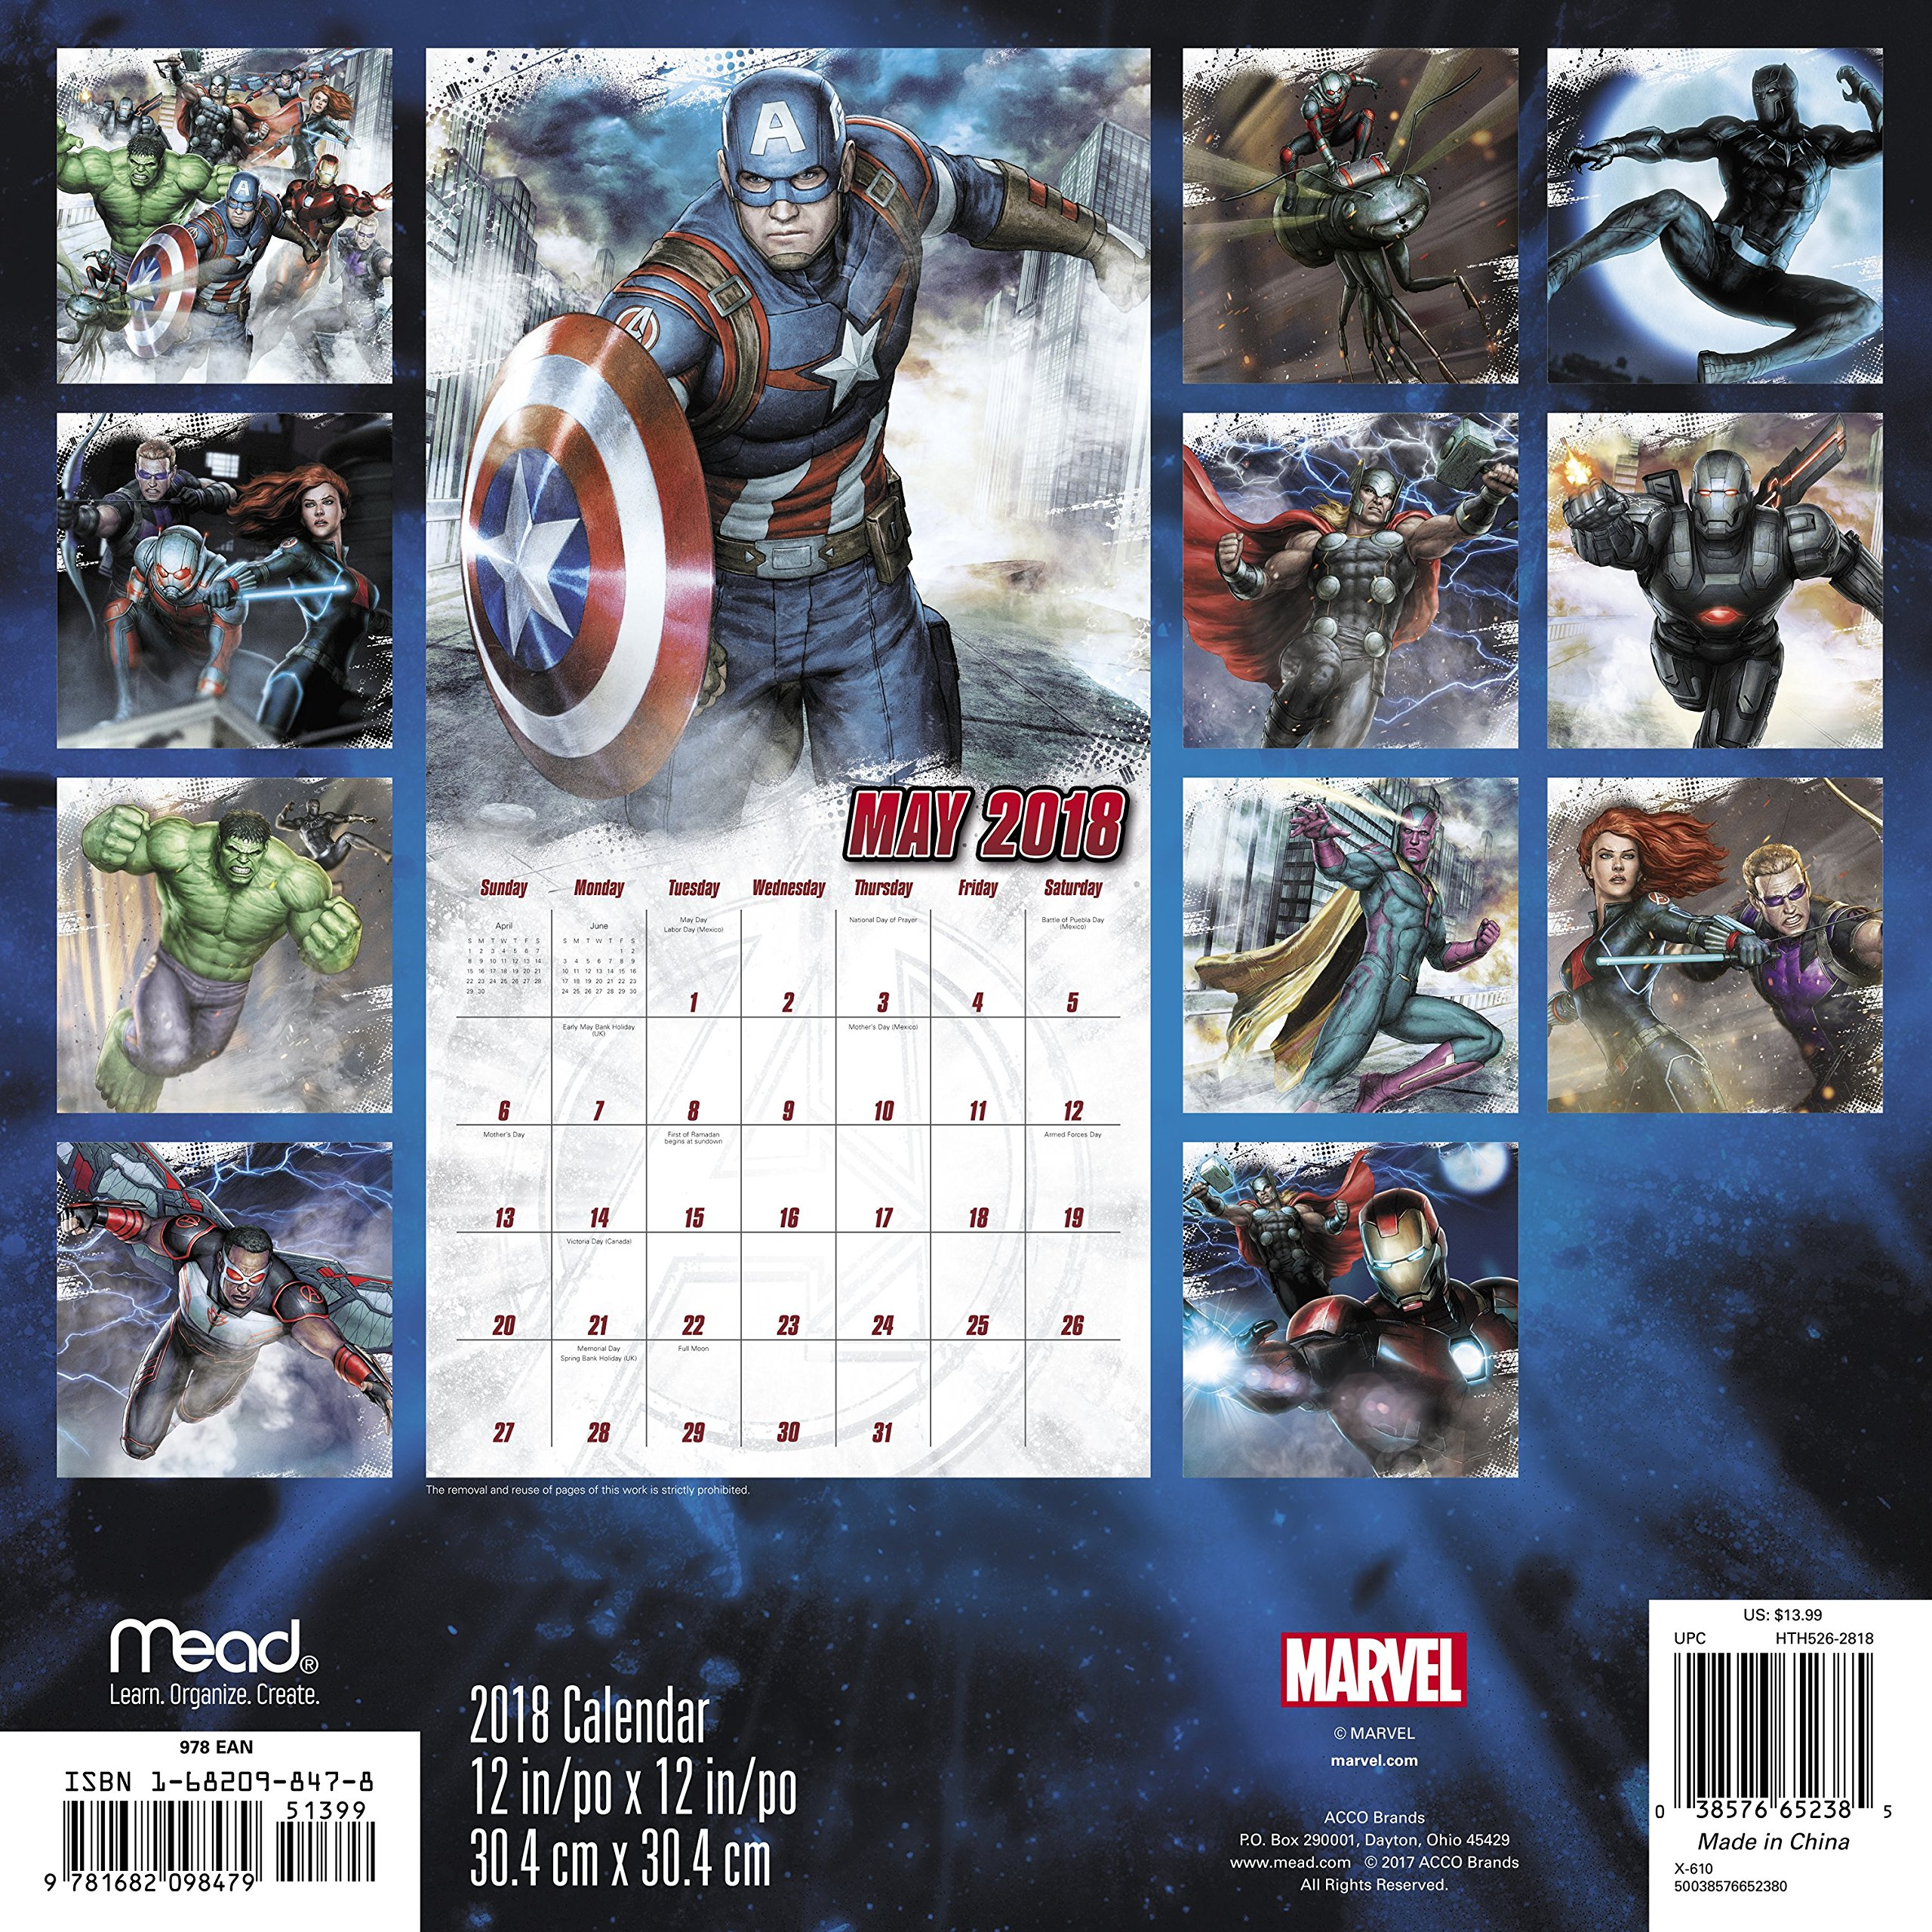 2018 Marvel's Avengers Assemble Wall Calendar (Mead): Mead